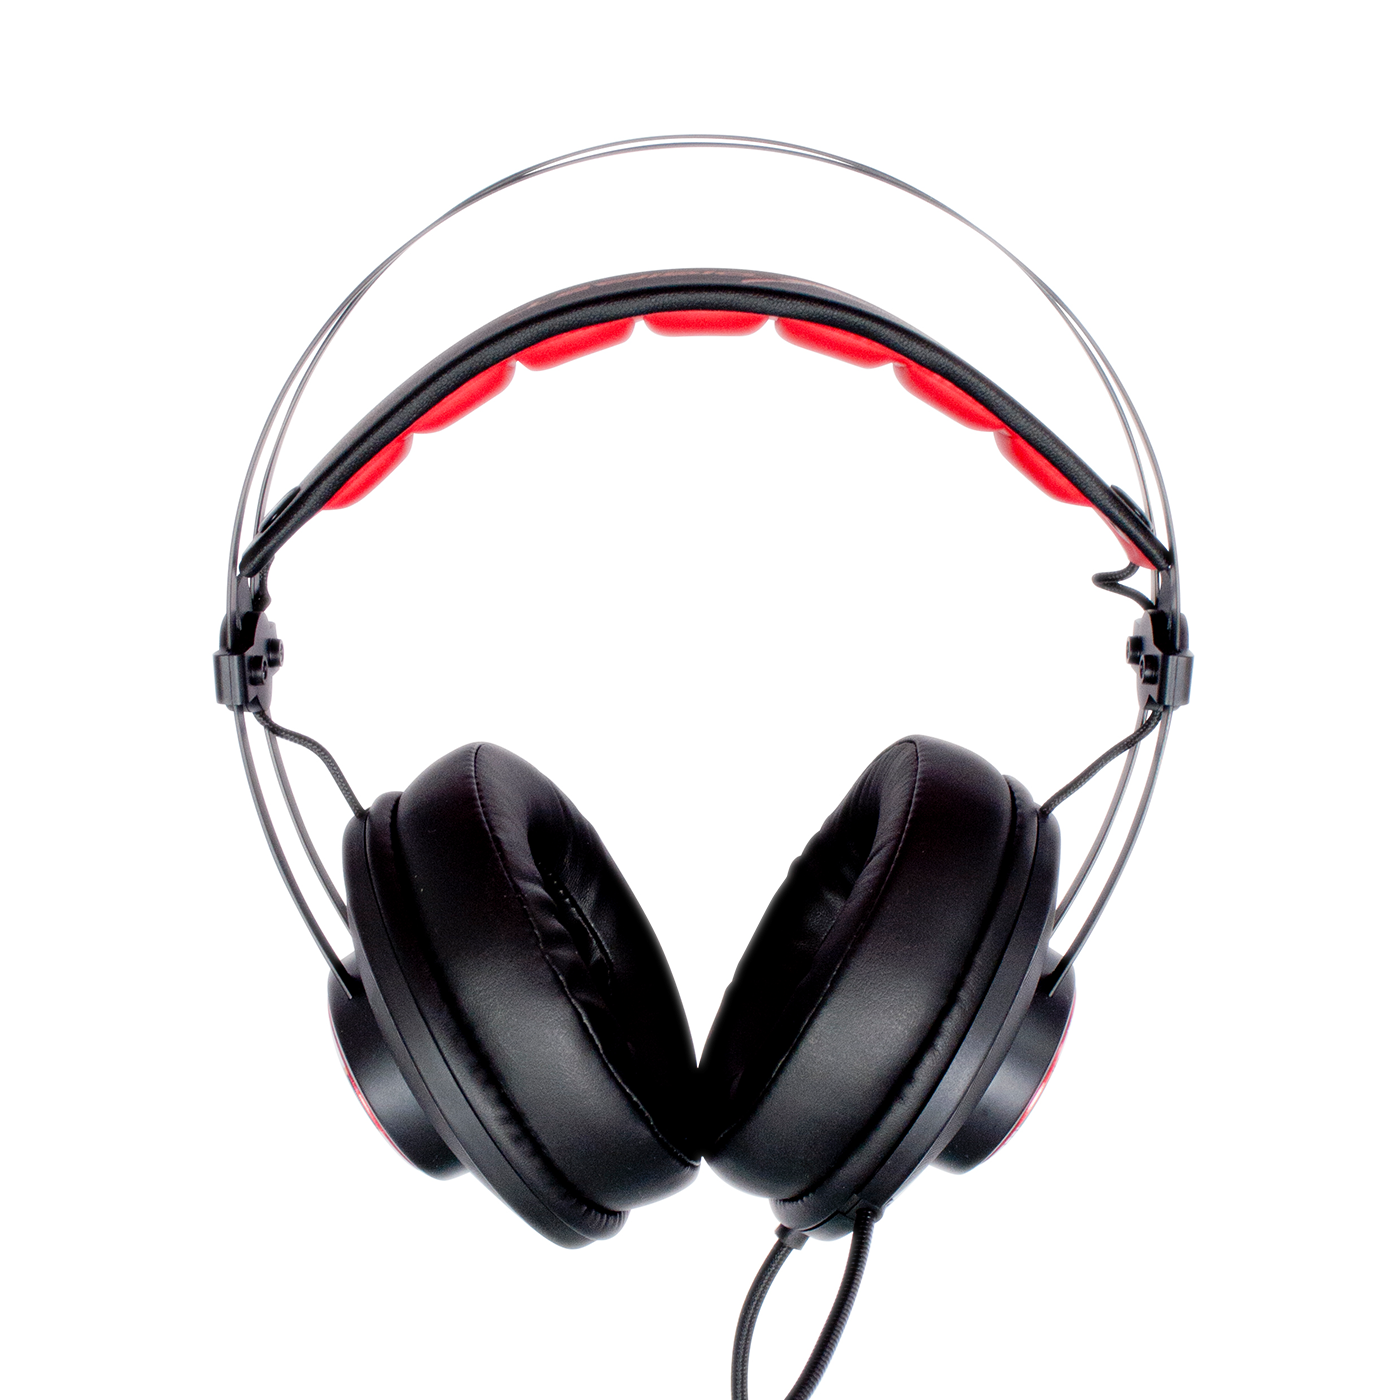 Digifast Apollo X2 headset with noise-canceling microphone straight view